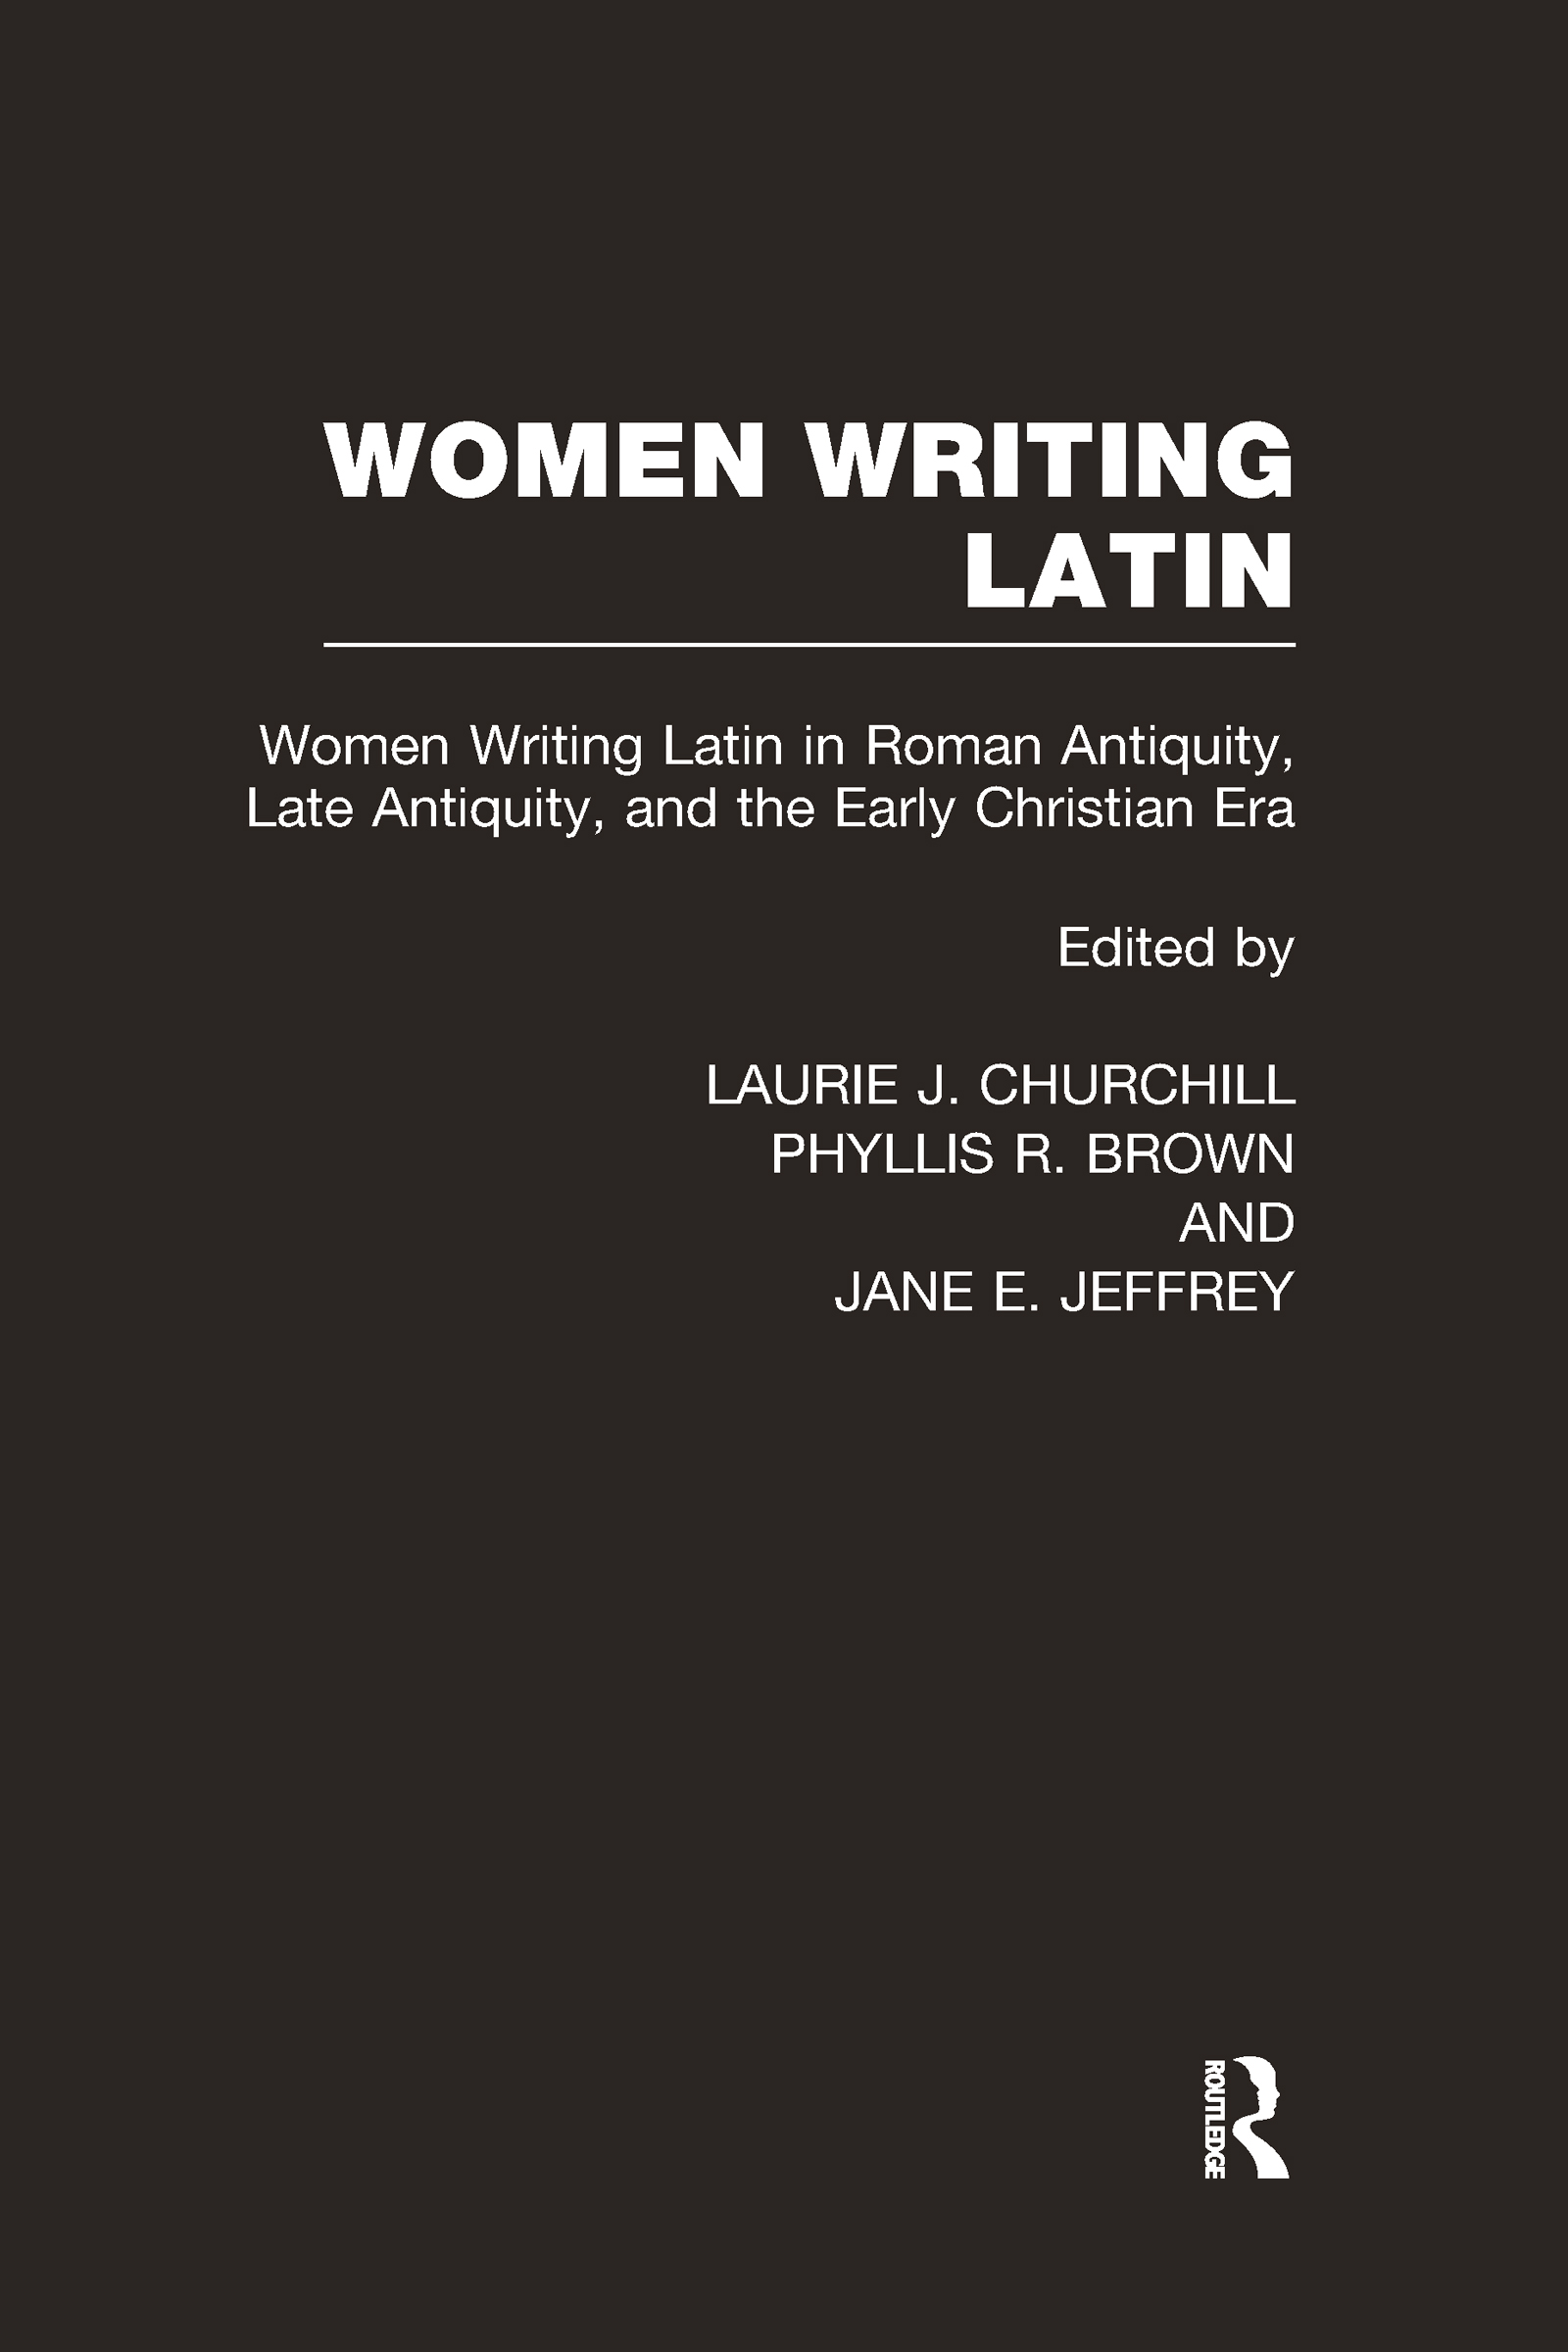 Women Writing Latin: Women Writing Latin in Roman Antiquity, Late Antiquity, and the Early Christian Era (Hardback) book cover